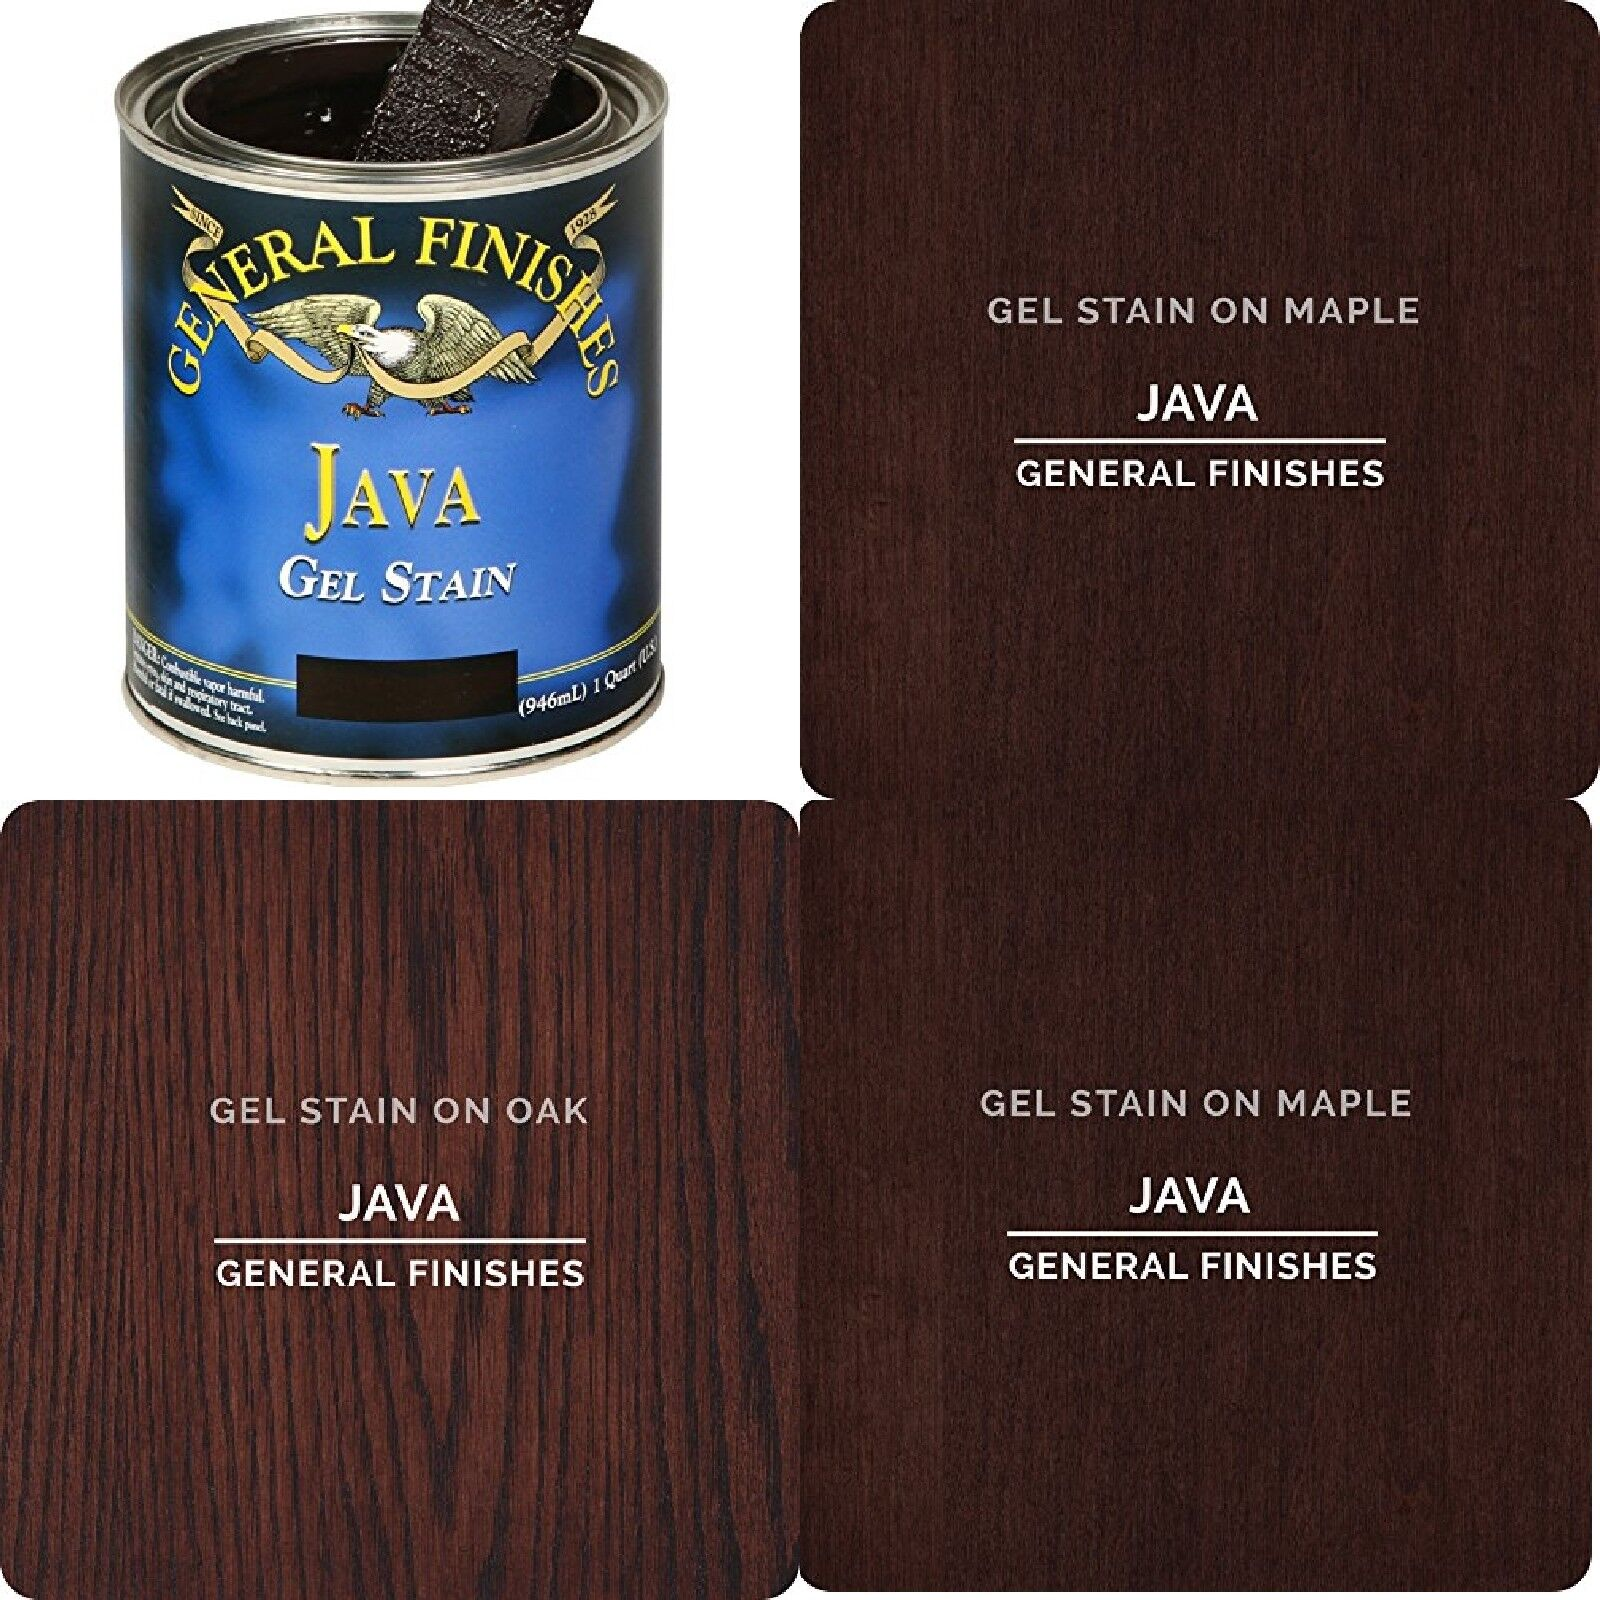 JH Gel Stain 1/2 Pint Java Woodworkers Finish That Shows Up Love The Lustrous - $23.32